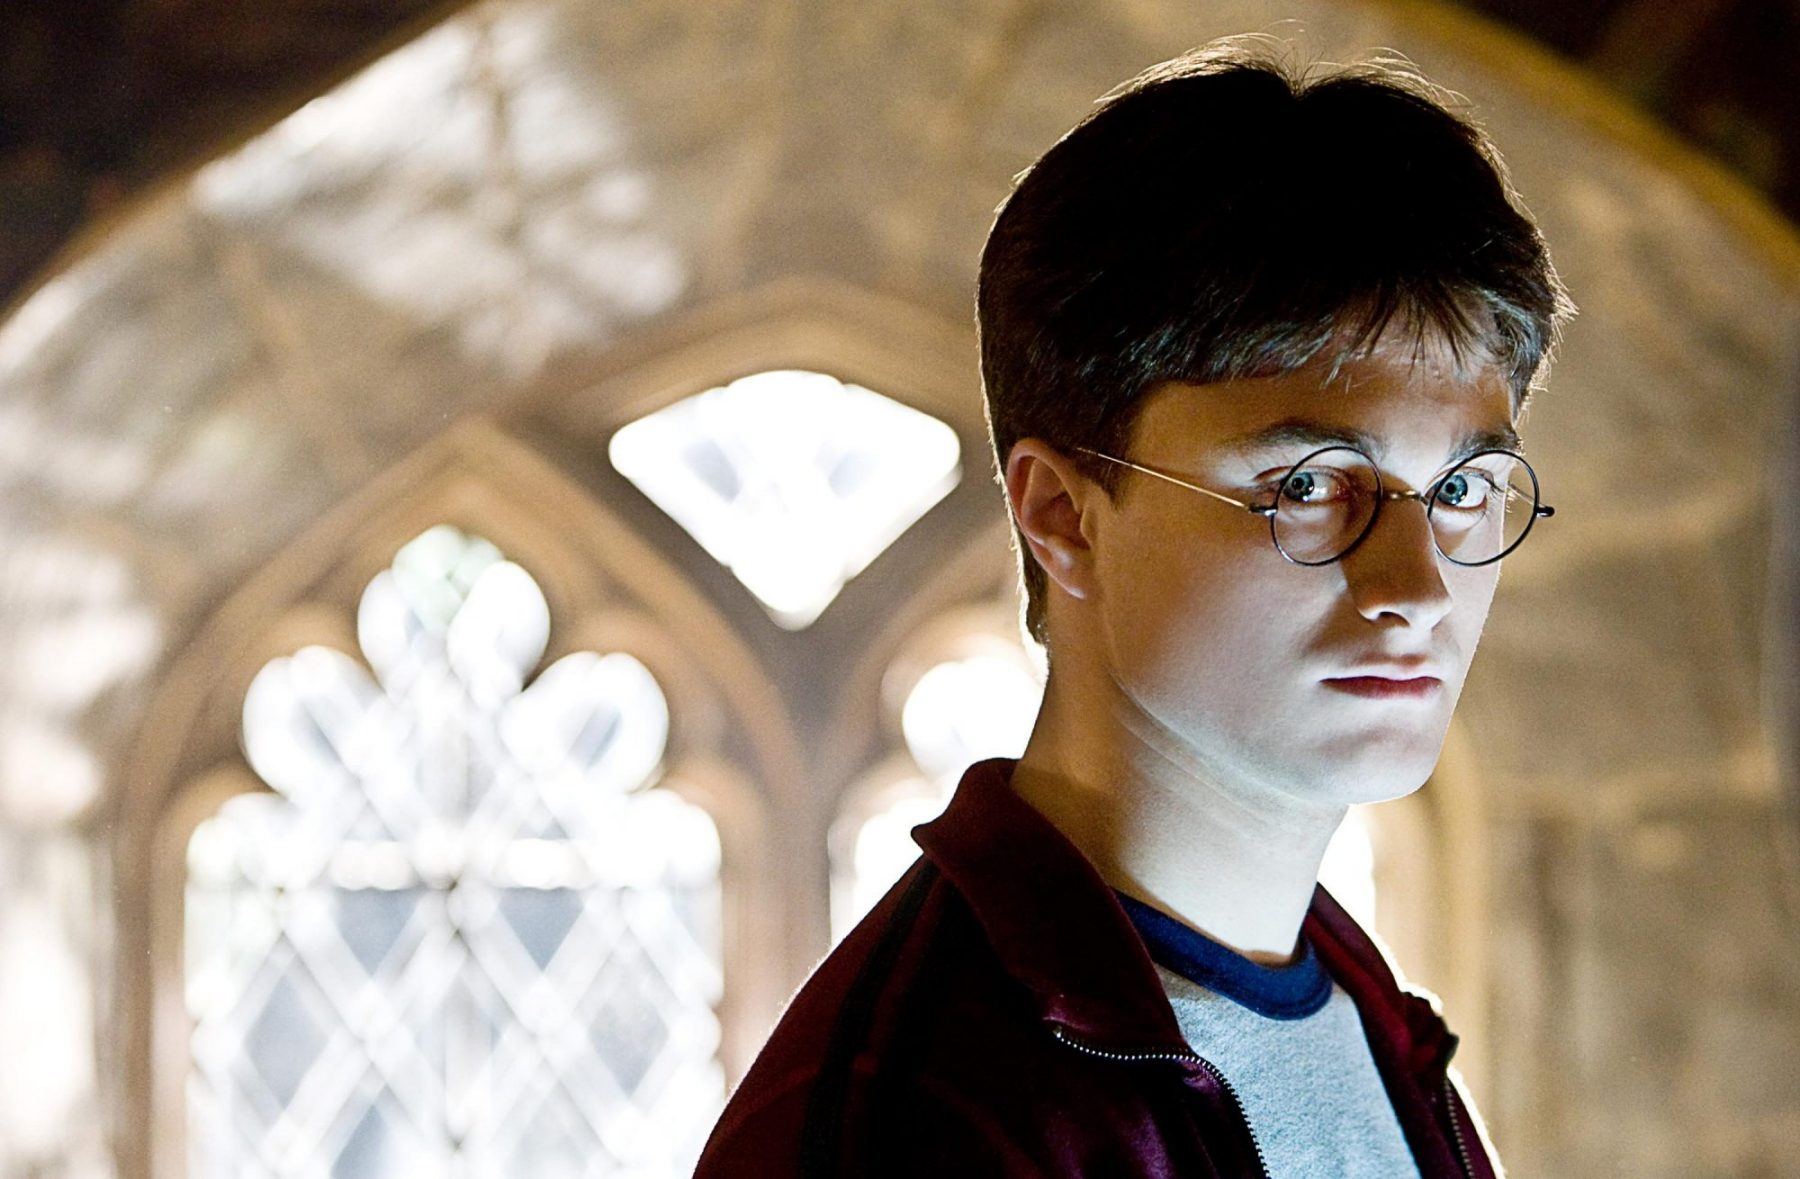 Daniel Radcliffe Doesn't Think He'll Ever Play Harry Potter Again